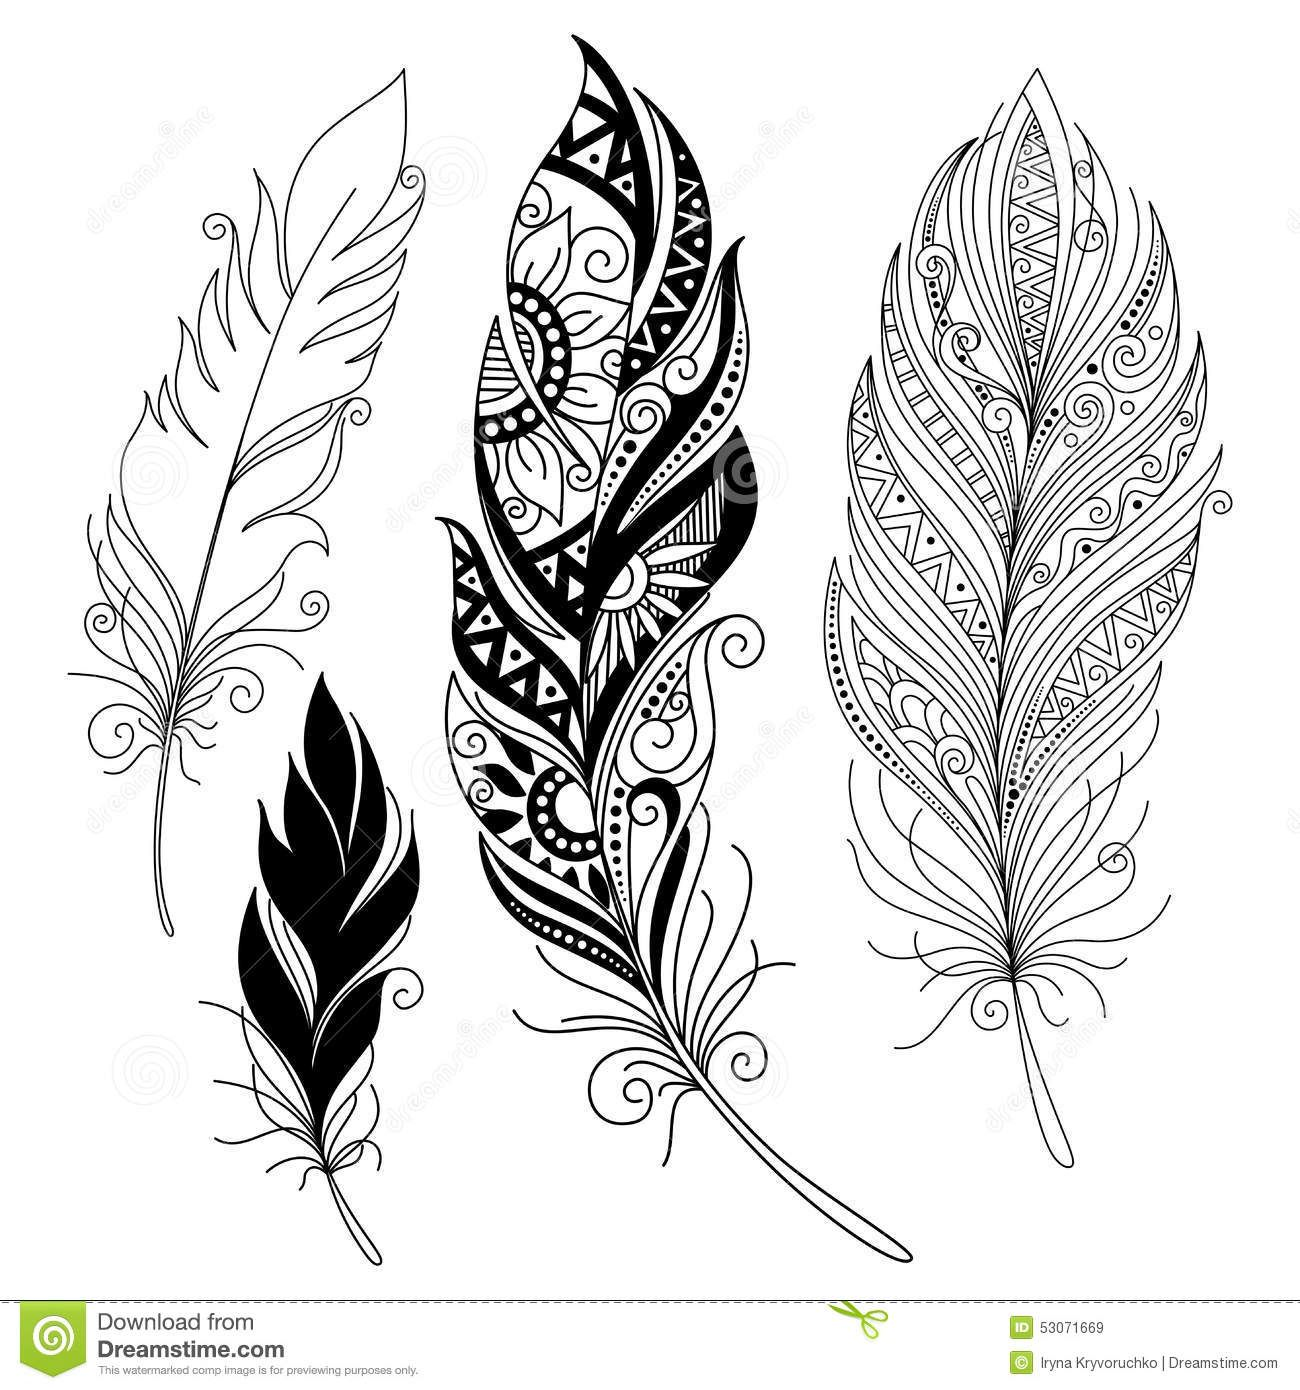 Disegno Piuma Pin Di Ismini Papas Su Disegni Tattoos Feather Tattoos